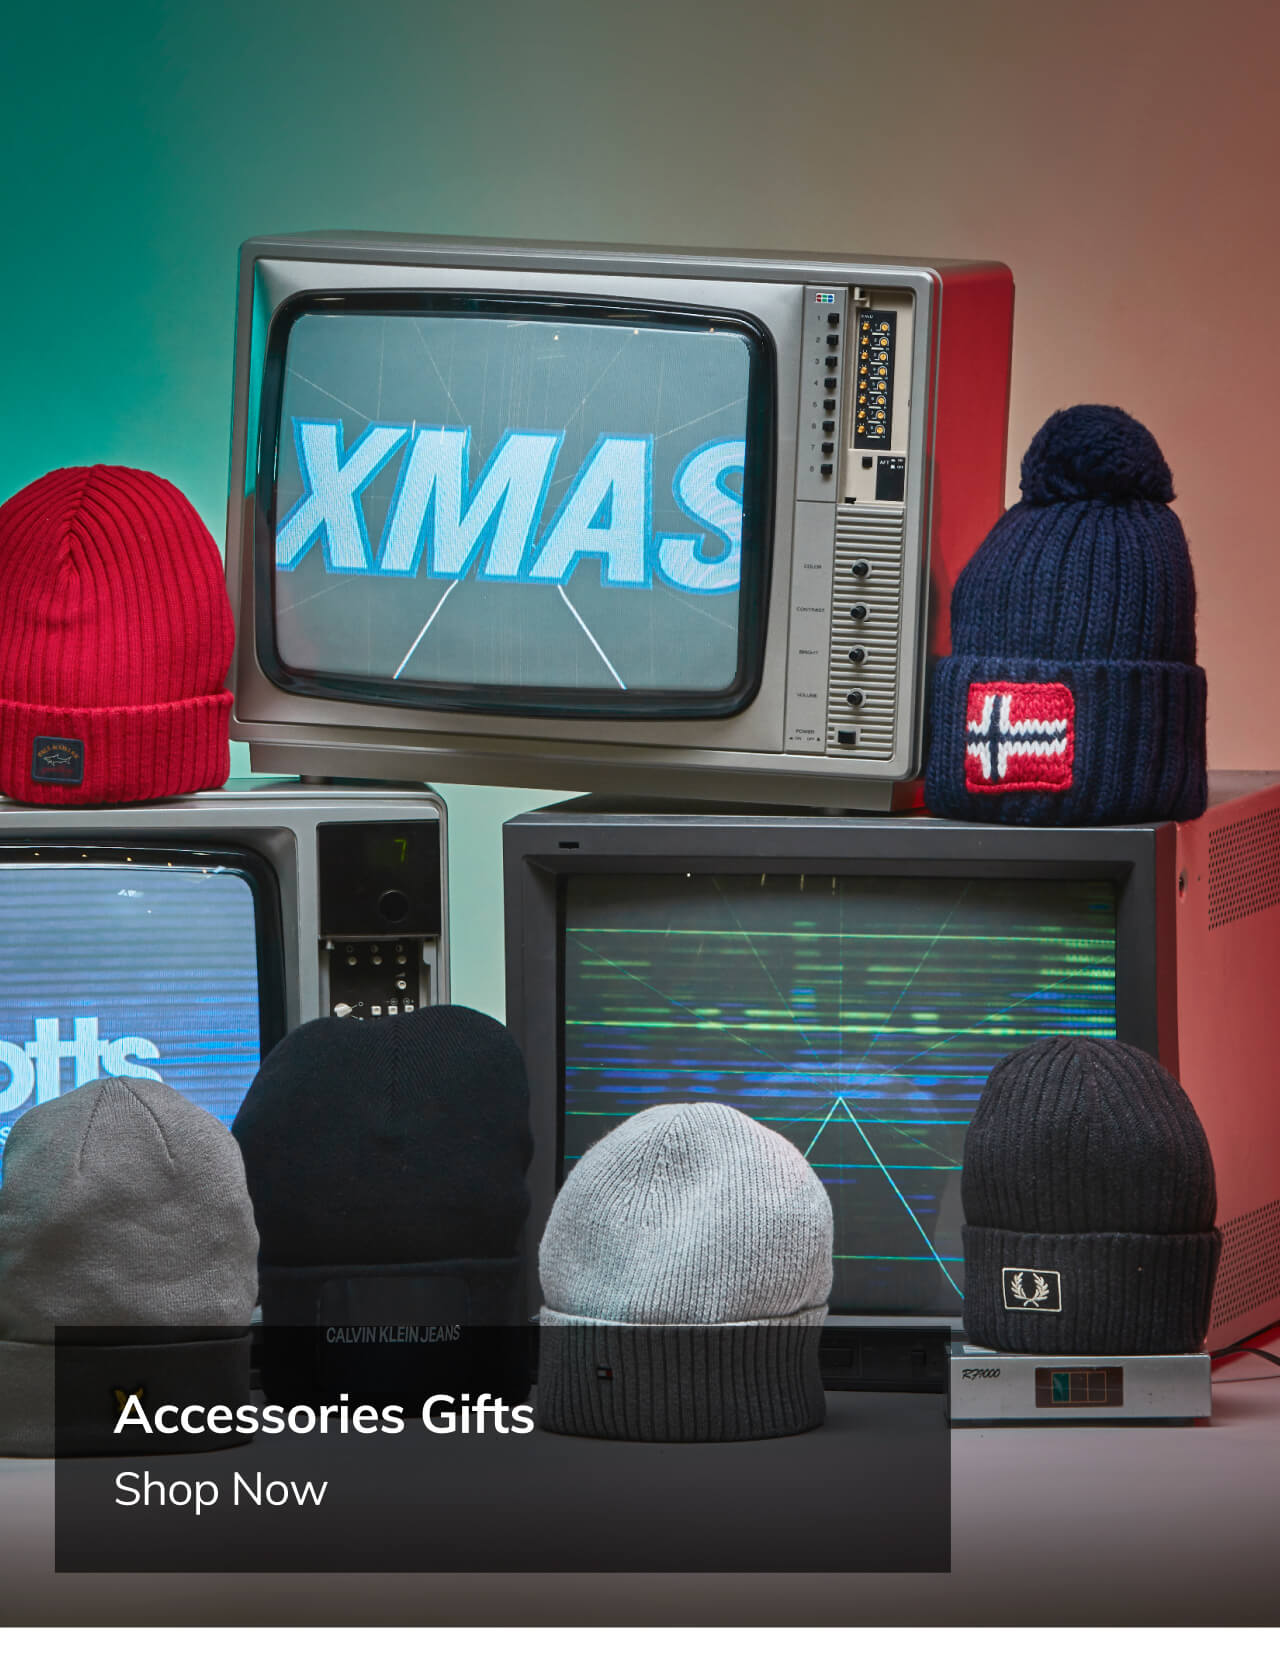 Accessories Gifts